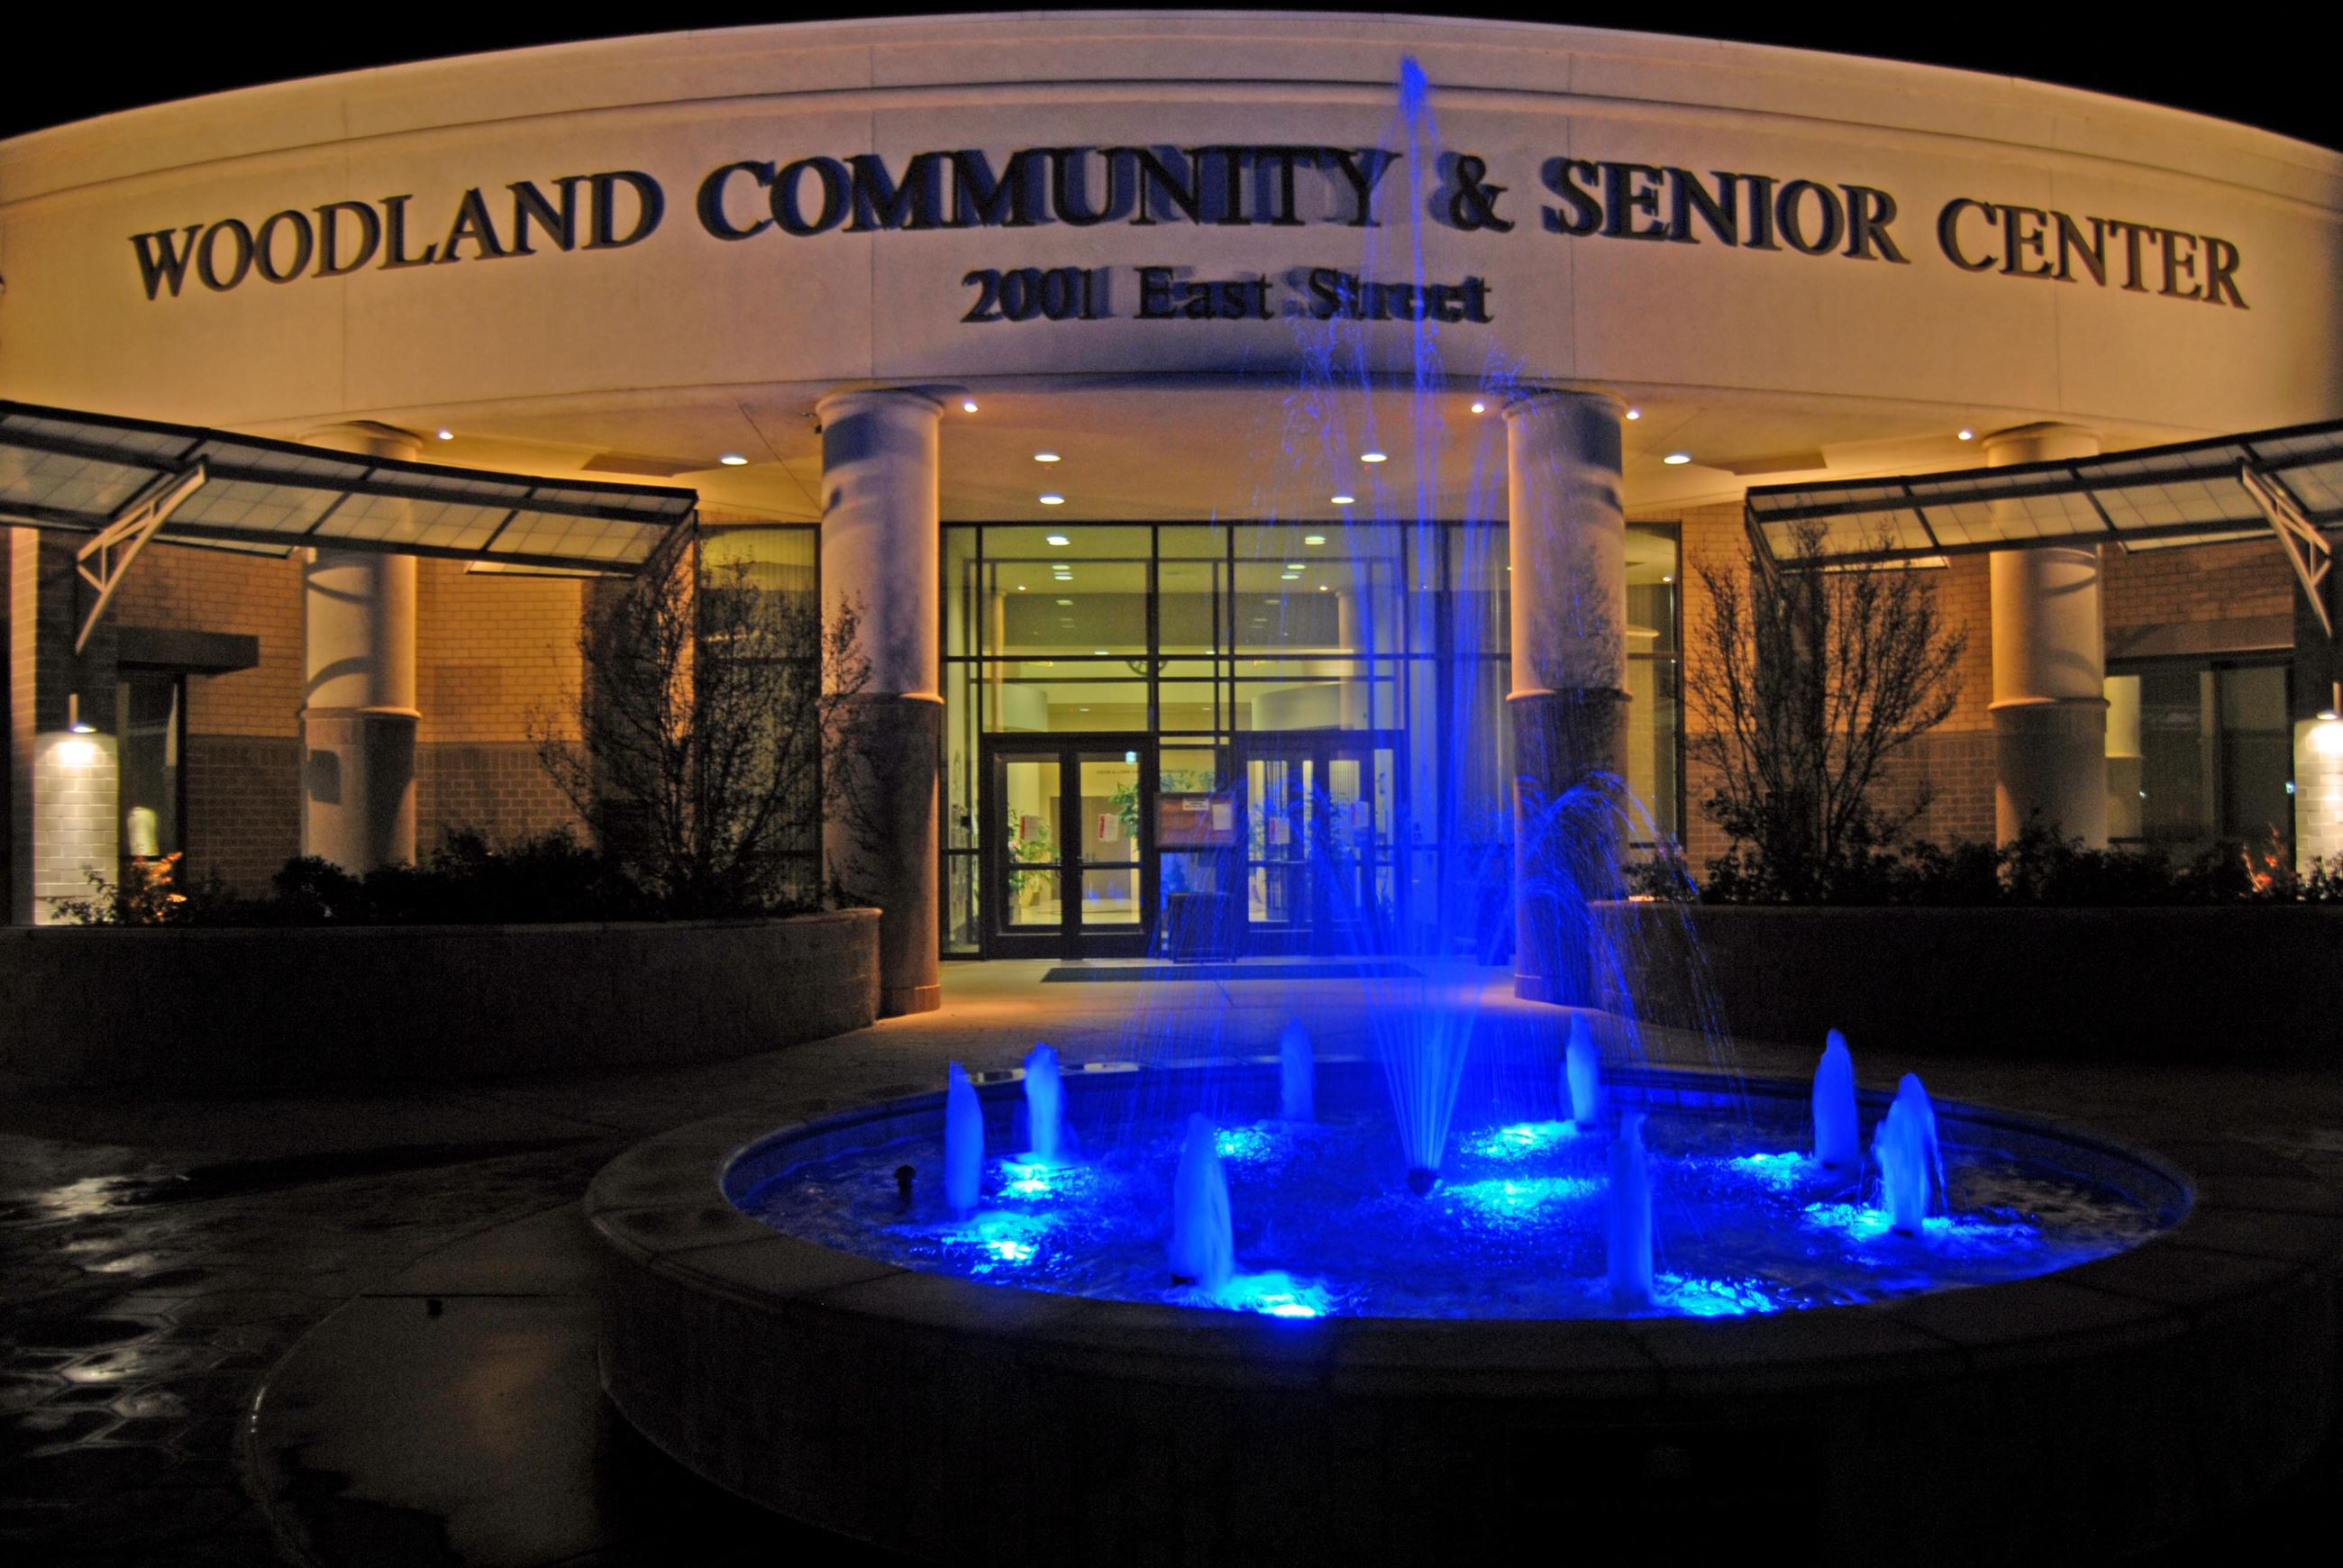 Woodland Community and Senior Center